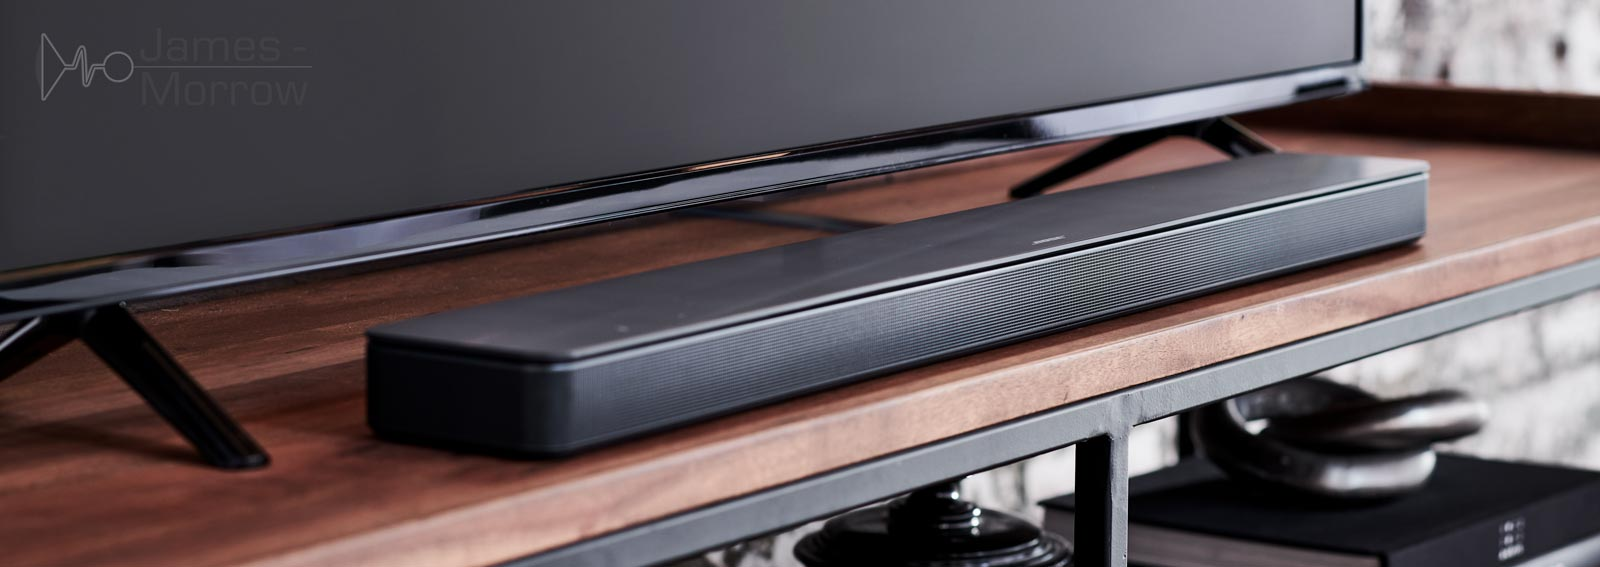 bose soundbar 500 close-up on TV stand lifestyle image